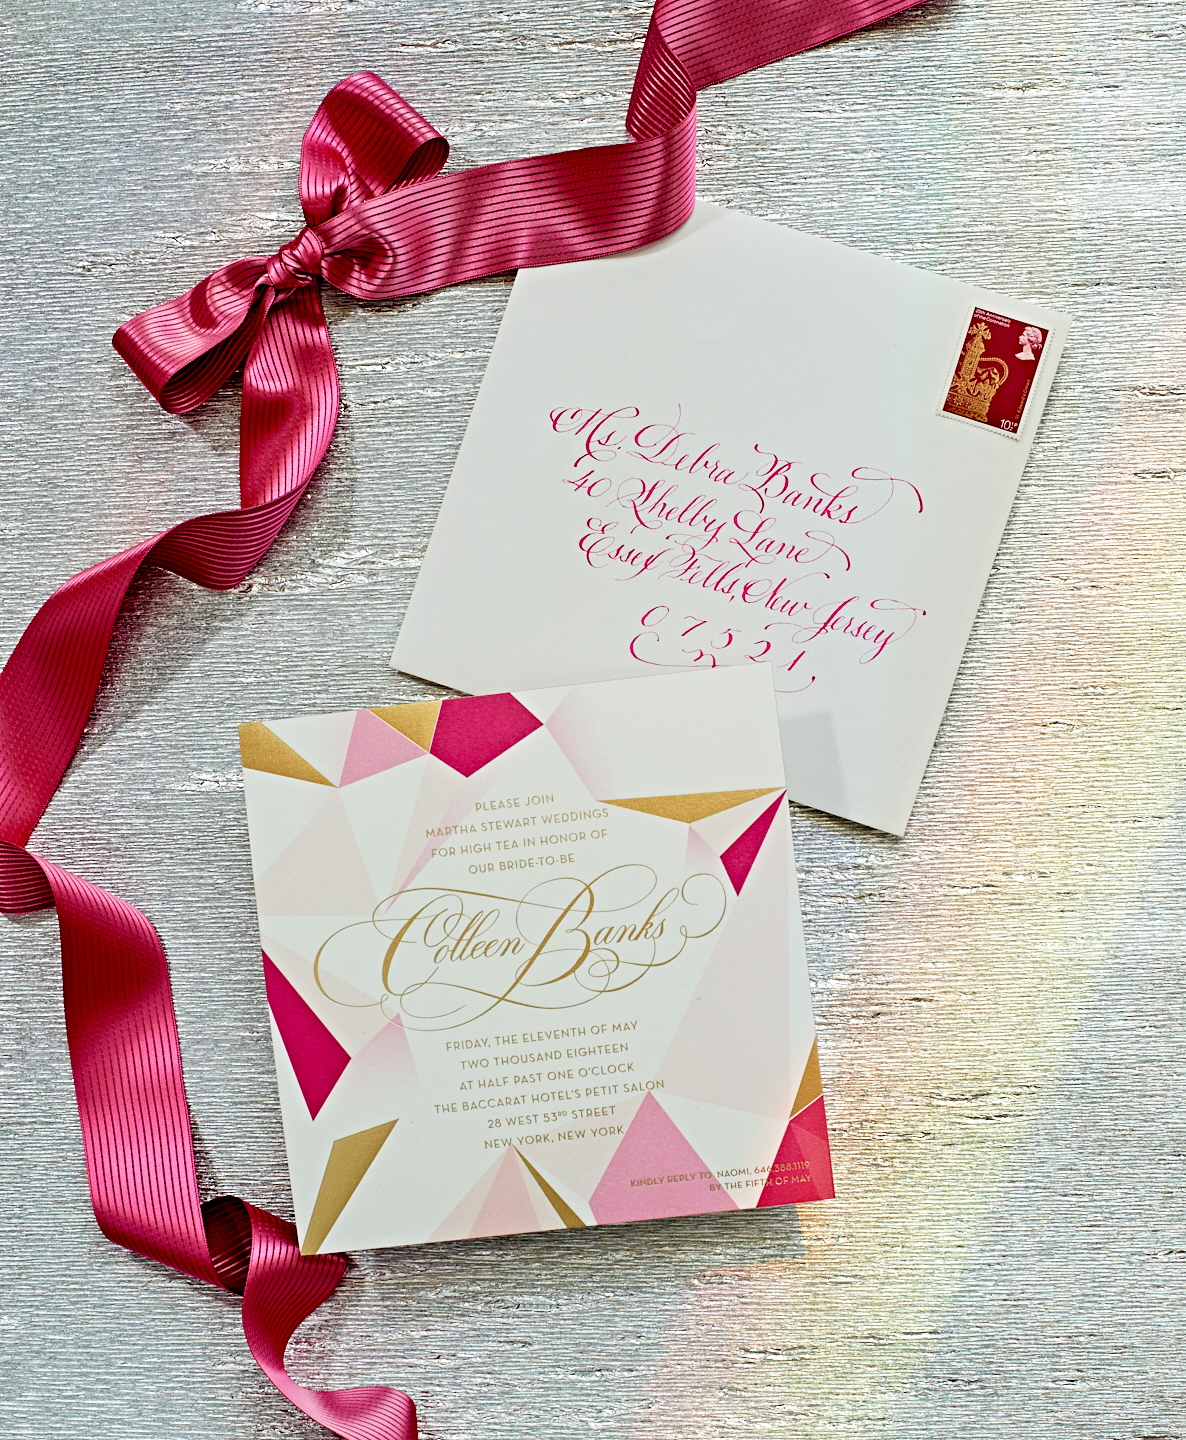 colleen jewel bridal shower invite